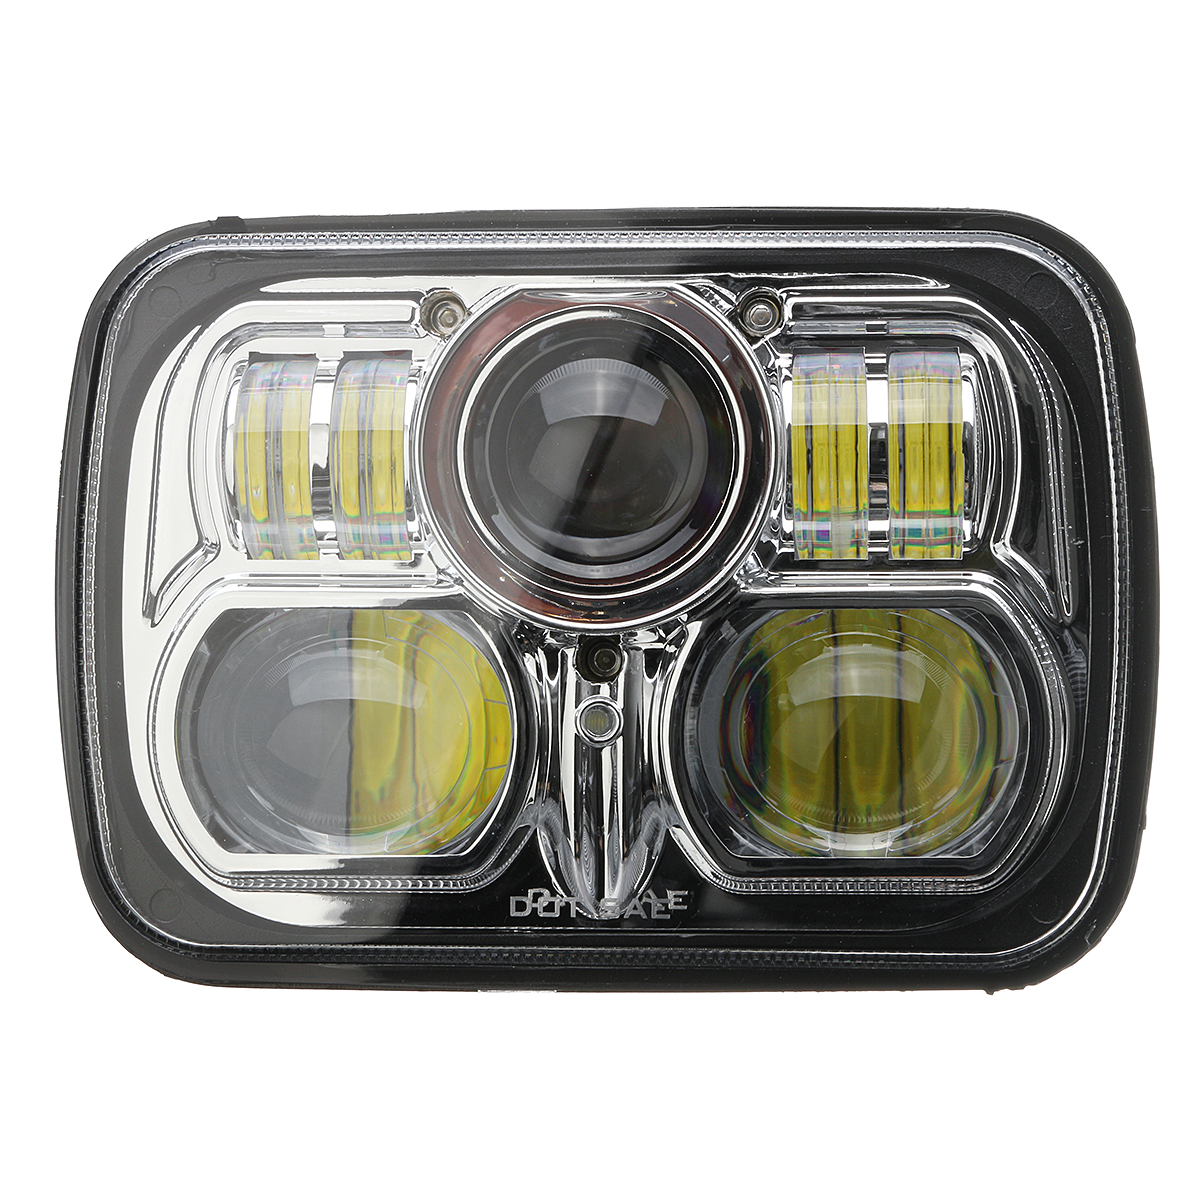 5.7inch x 7inch LED Projector Headlight Hi/Lo Beam Fog Lamp For Jeep/Wrangler YJ JK